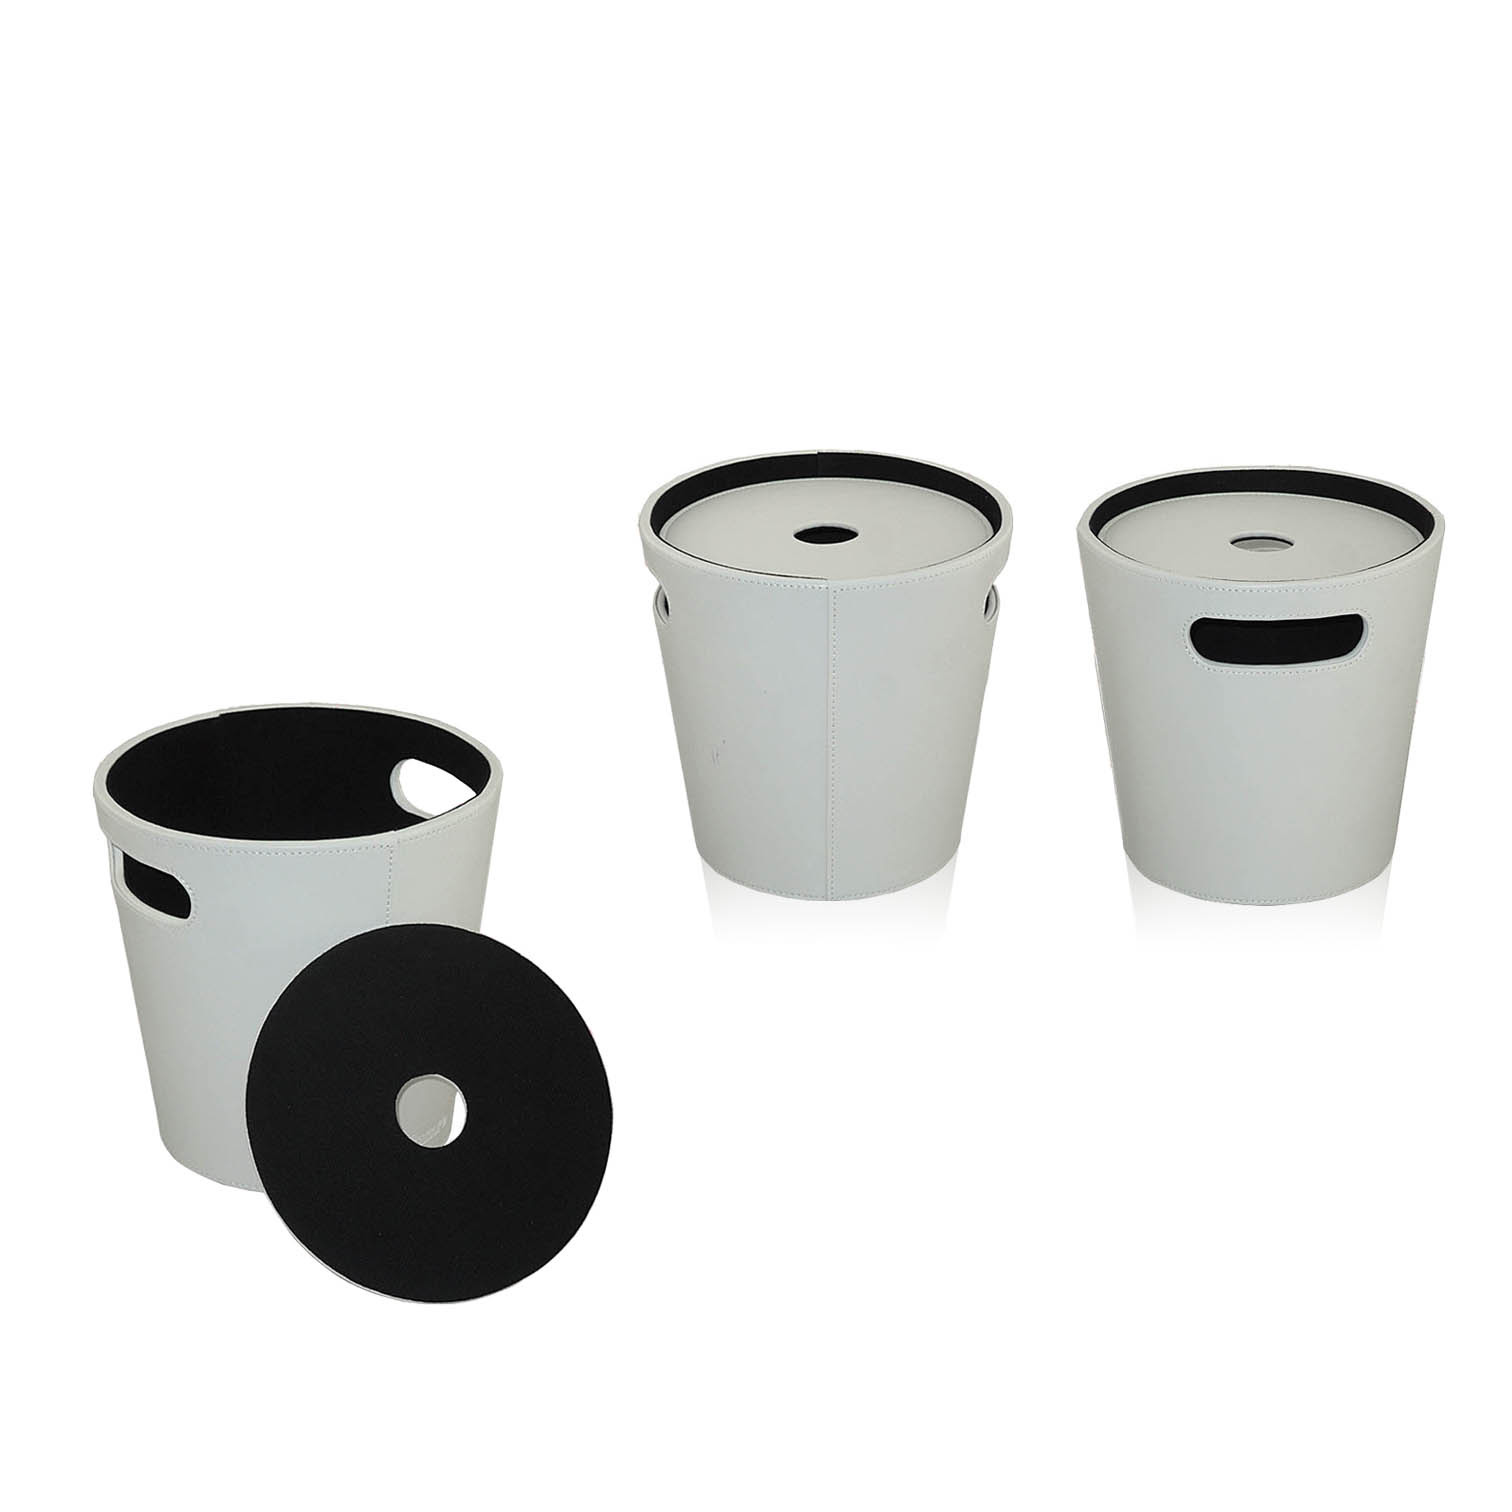 Office hotel durable eco-friendly recycle waste bin